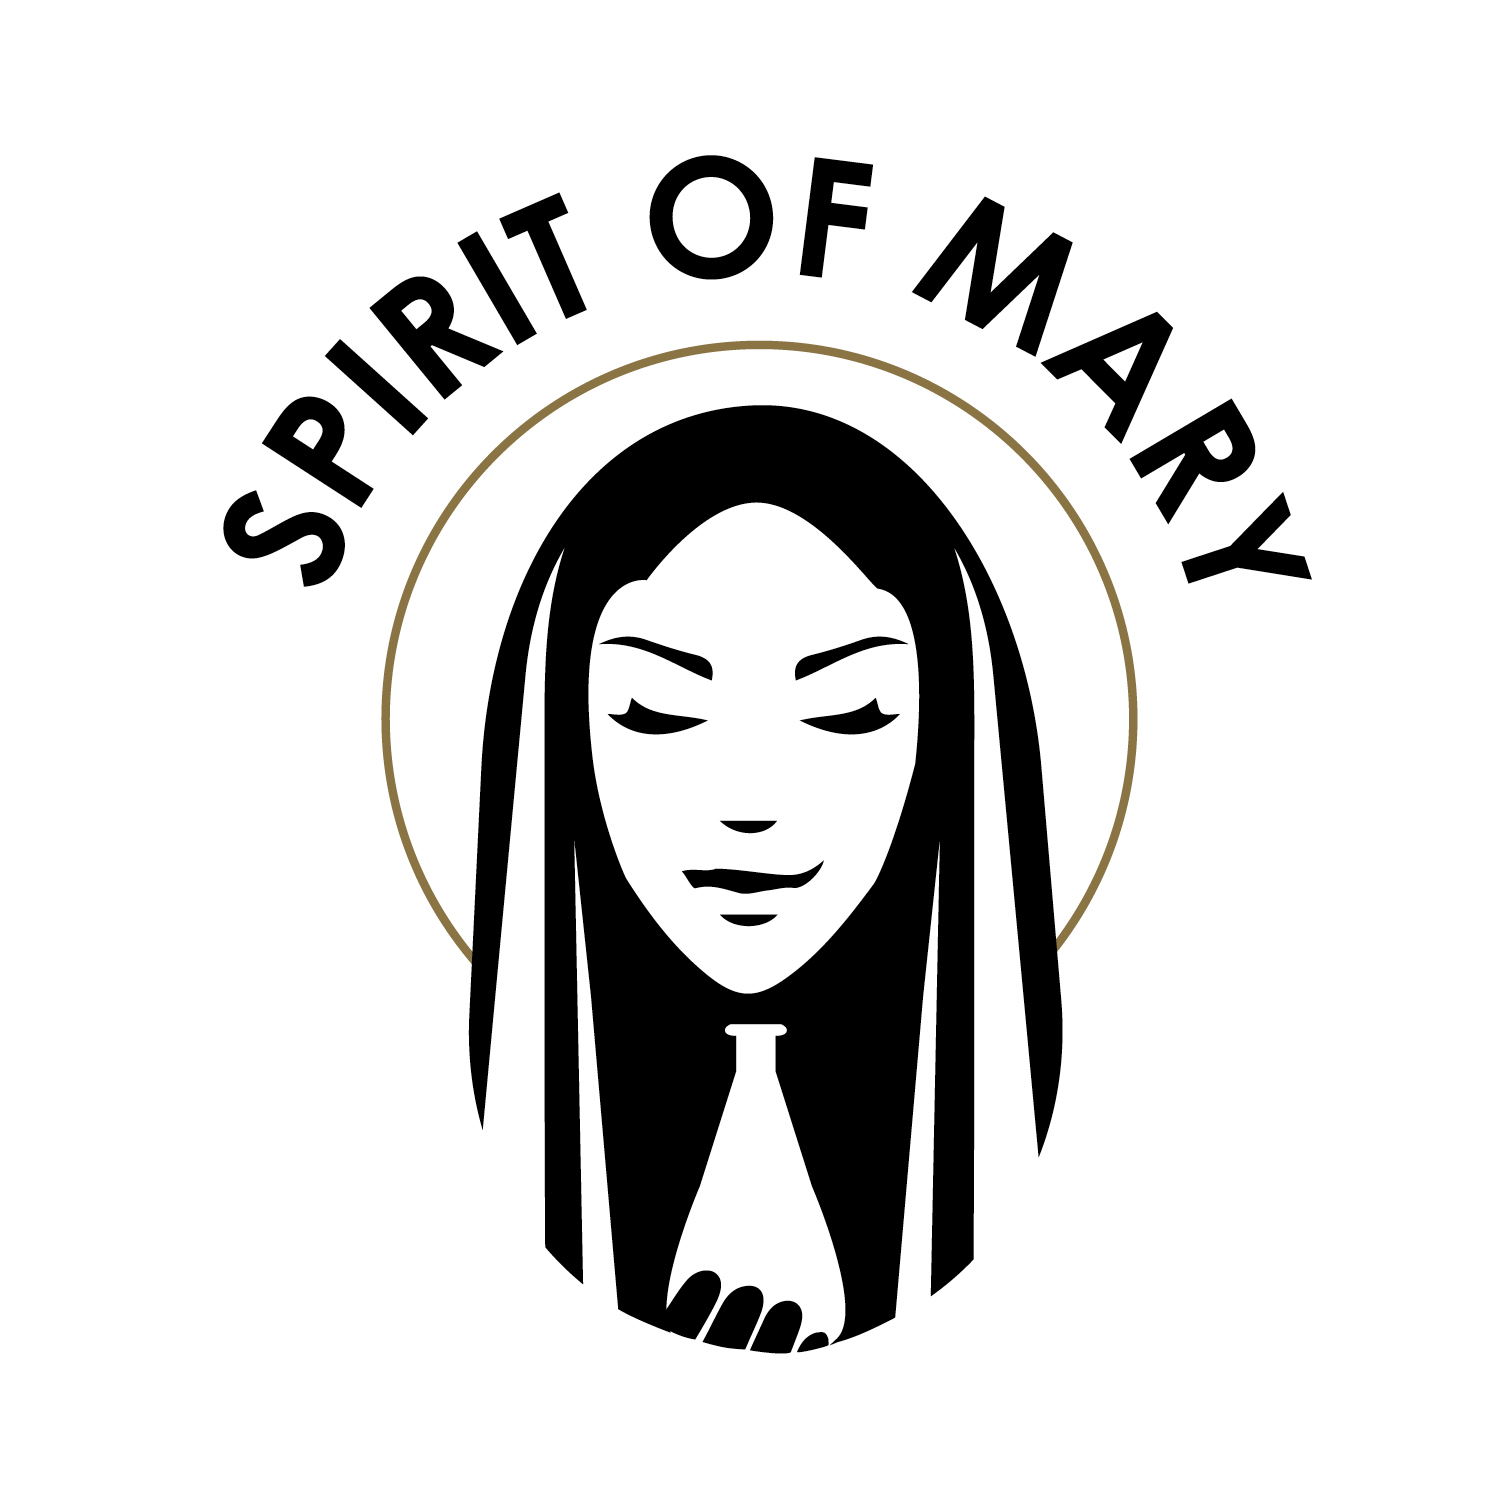 Logo Spirit of Mary 1500x1500 px